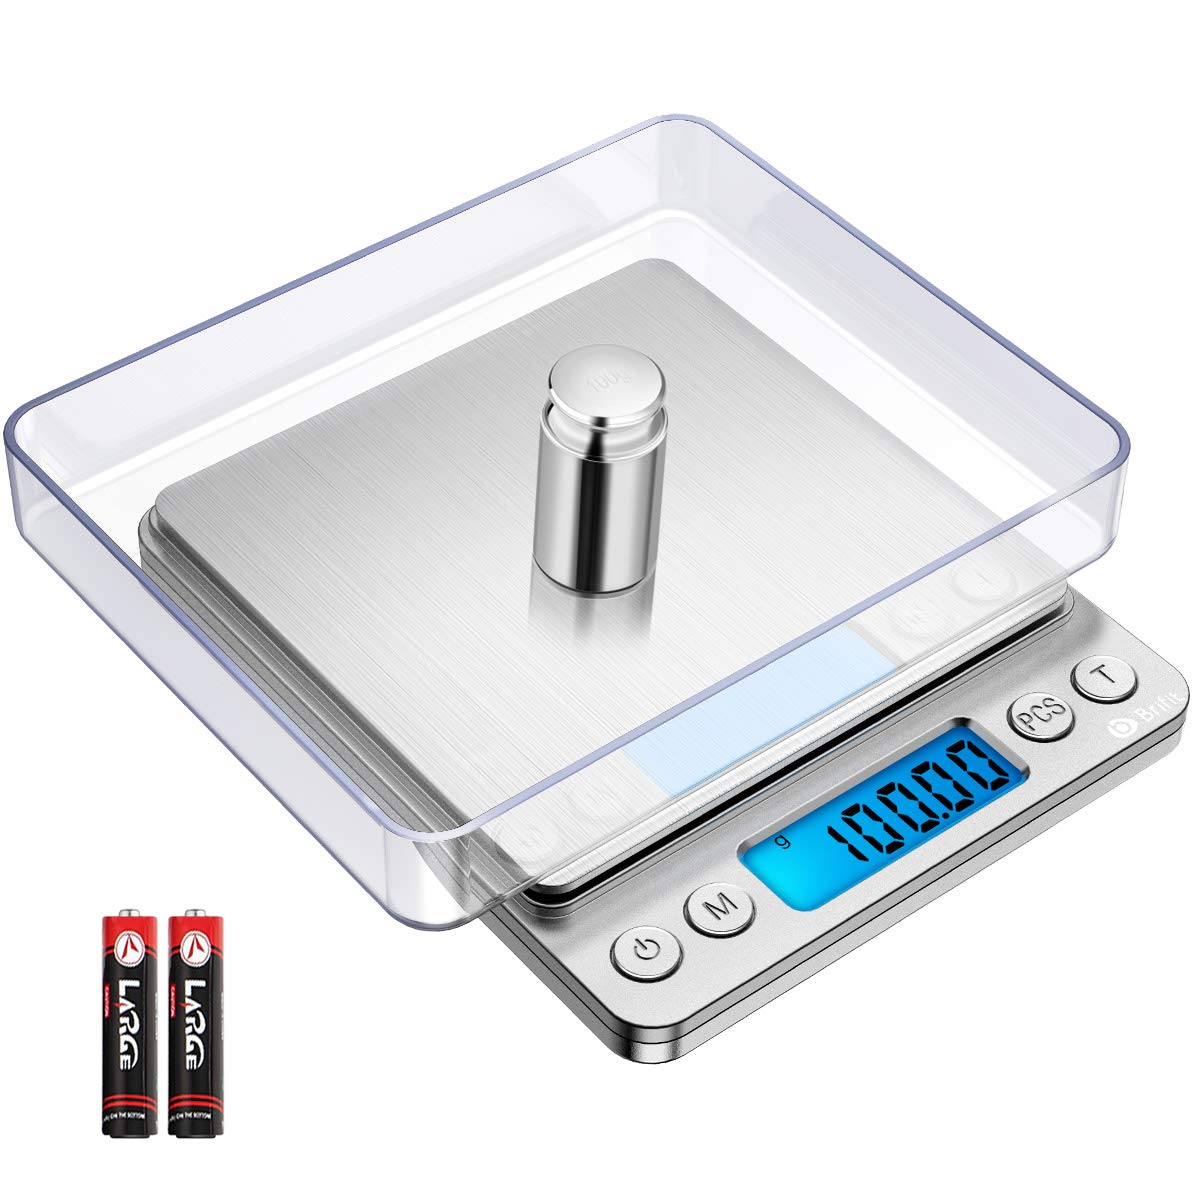 (NEW) Brifit Digital Kitchen Scale, 500g/ 0.01g Mini Pocket Jewelry Scale, 100g calibration weight, Cooking Food Scale, Back-Lit LCD Display, 2 Trays, 6 Units, Auto Off, Tare, PCS, Stainless Steel